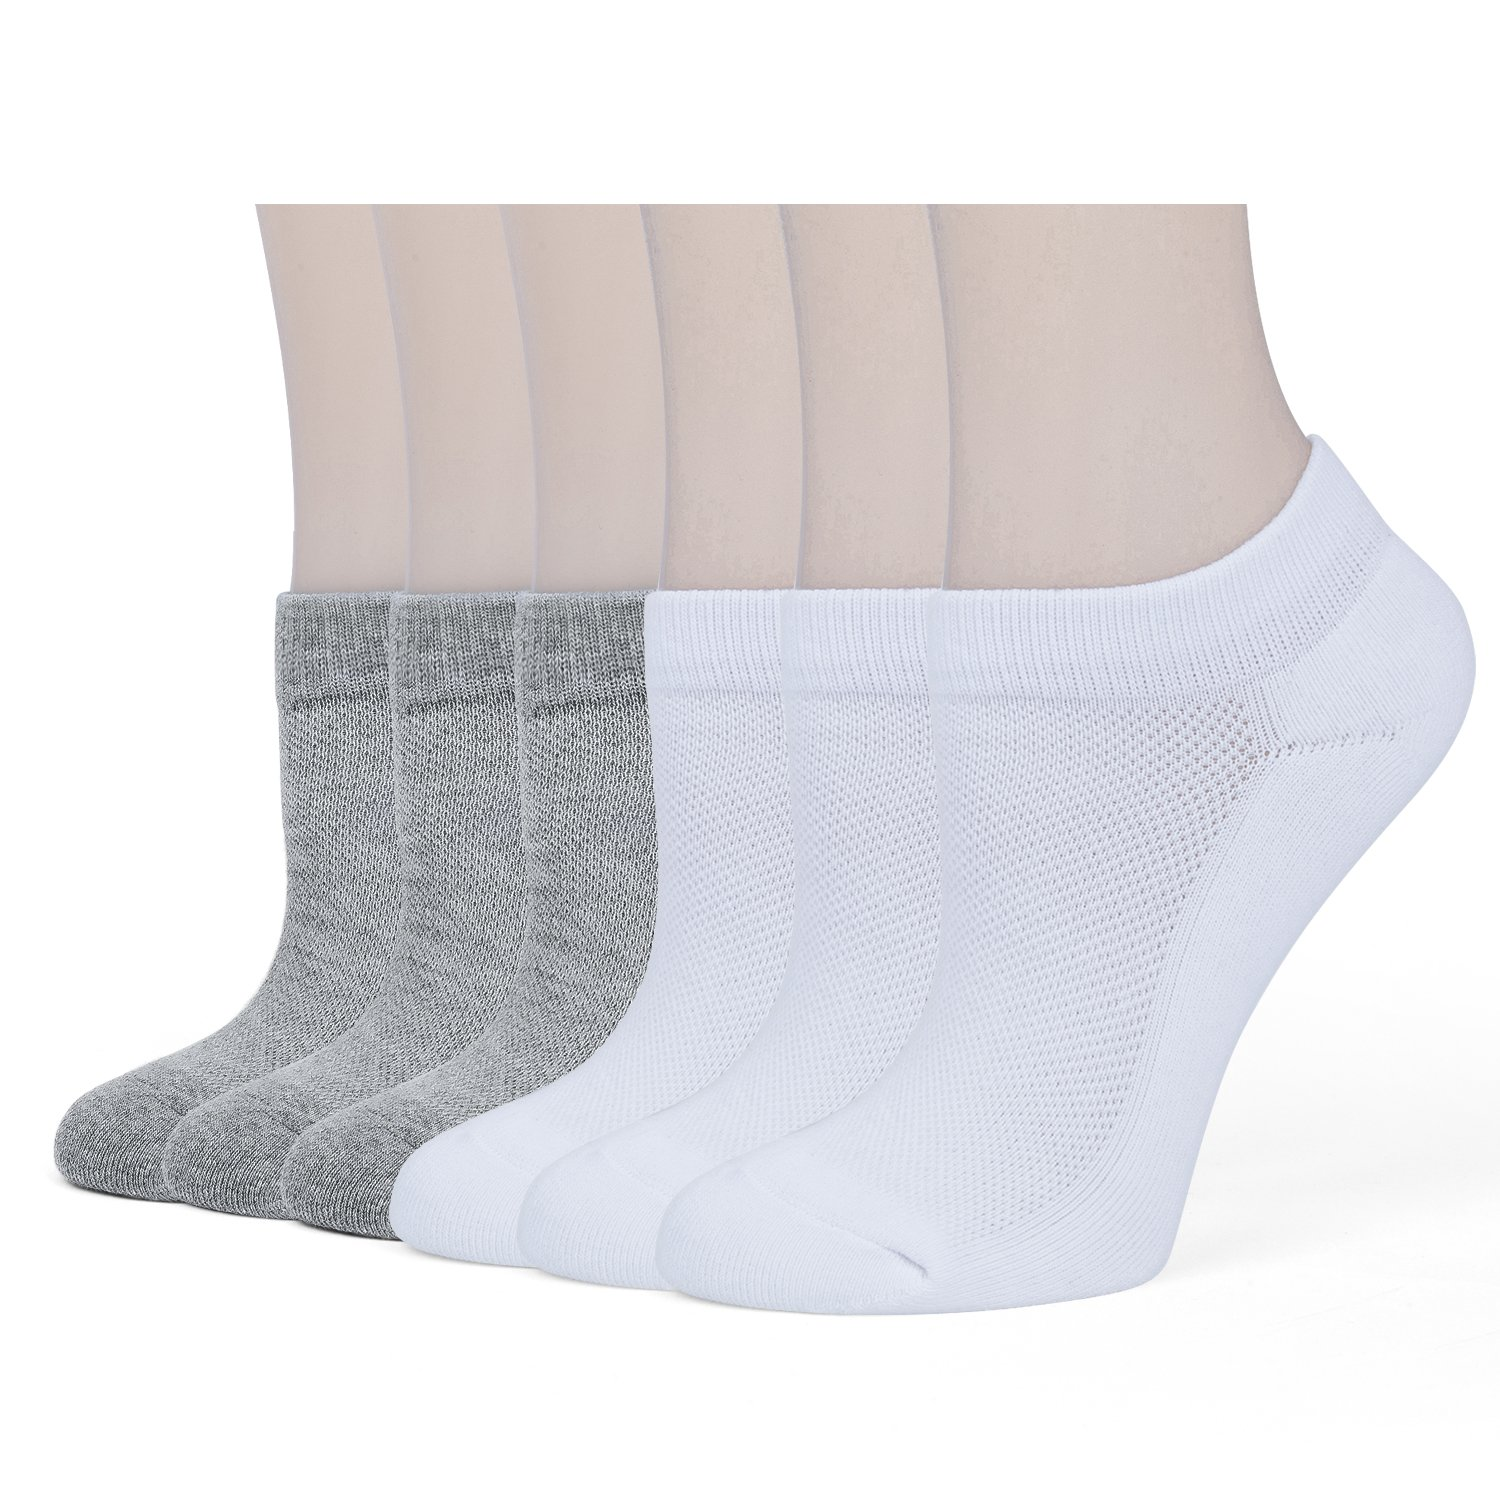 Women's Low Cut Socks Athletic Running Cushion Short Cotton Ankle Socks Low Cut Socks (6 Pairs) by Quoty